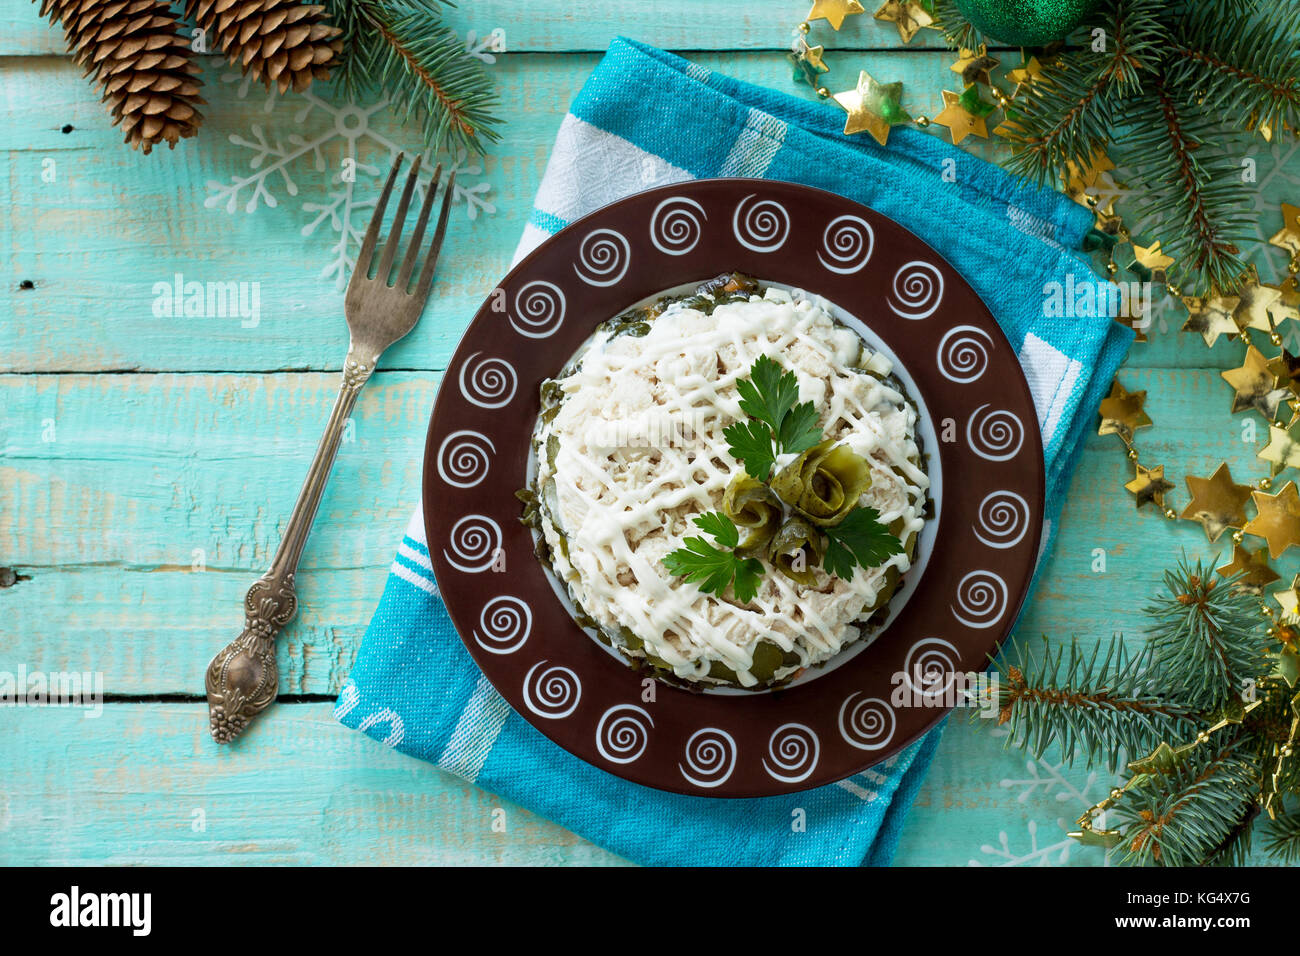 Home snack on the kitchen wooden table. Salad with chicken, rice and sea cabbage. - Stock Image